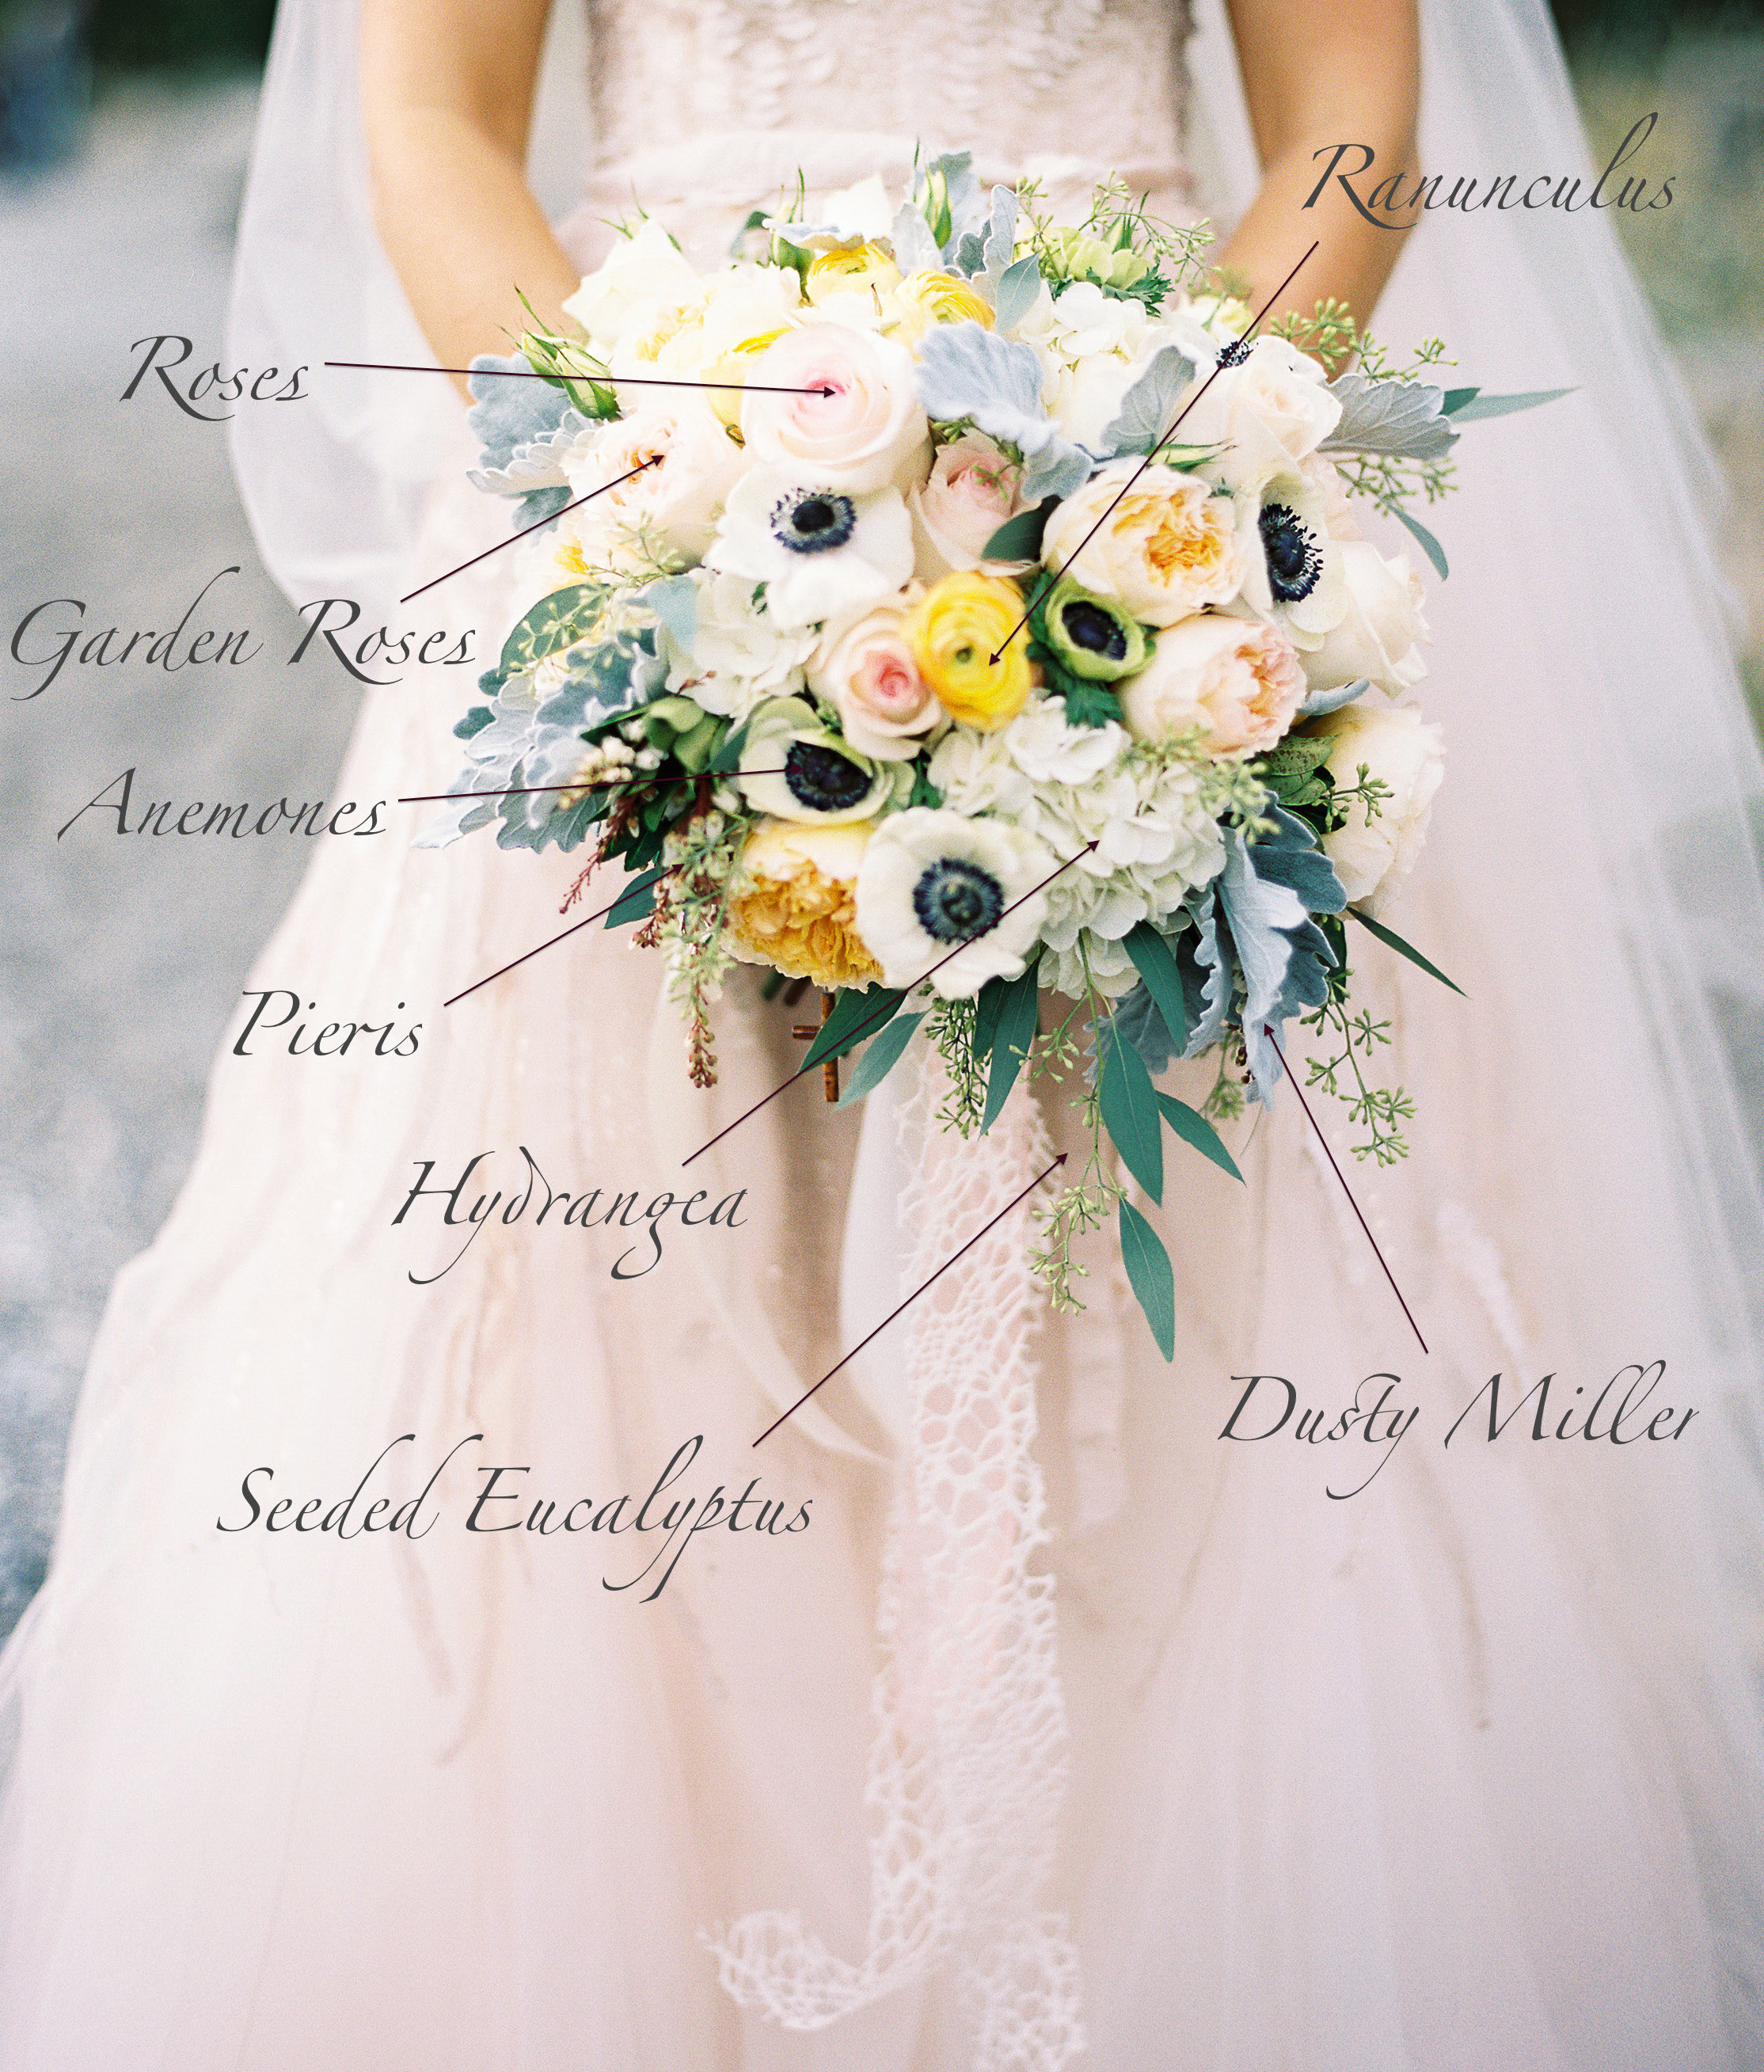 Bridal bouquet flowers and recipe of yellow and ivory roses, ranunculus, anemones, pieris, and seeded eucalyptus